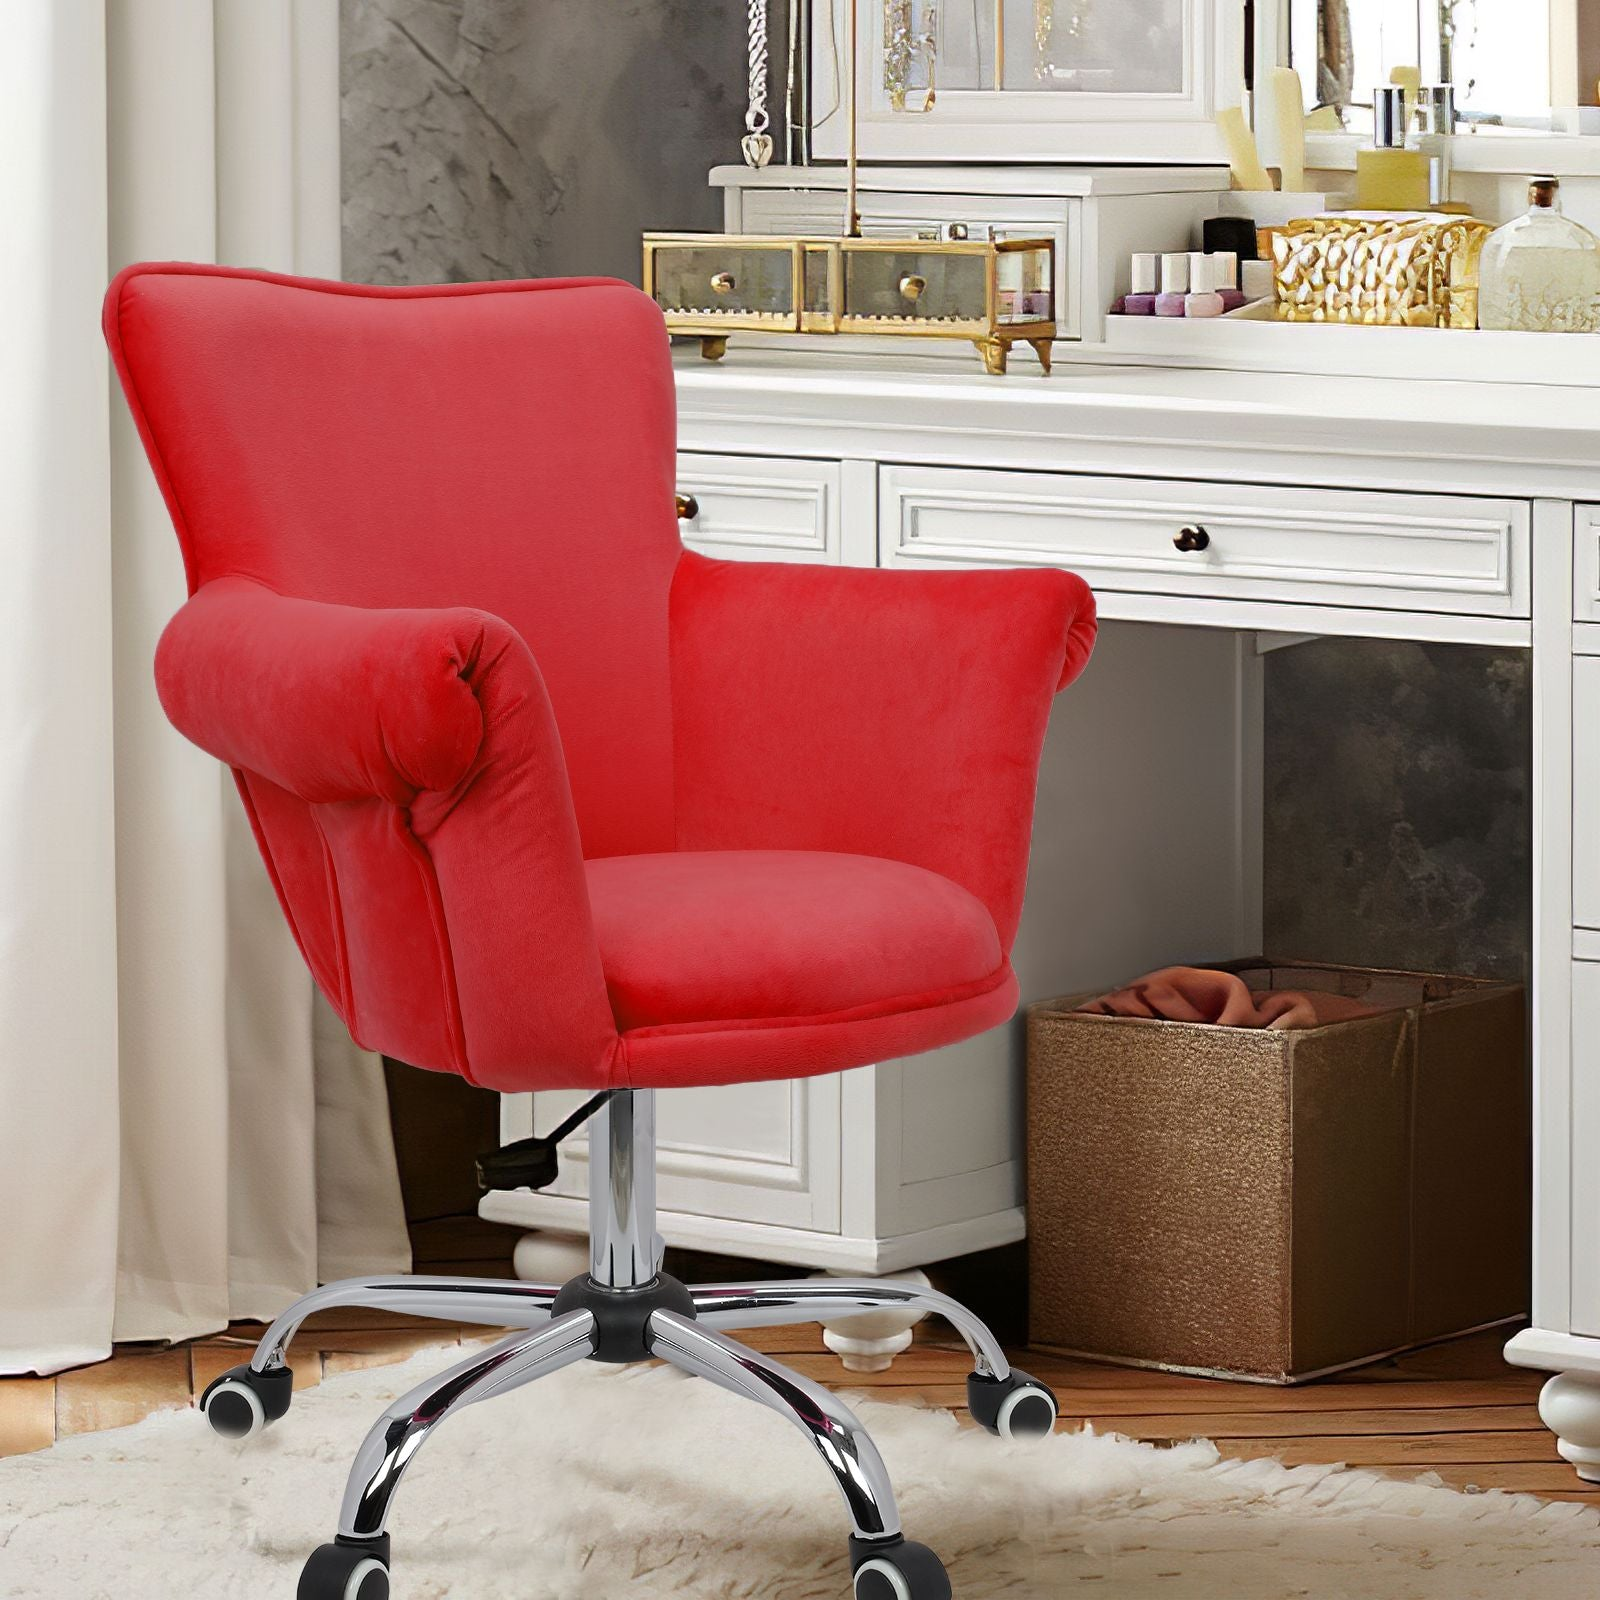 Firebrick Modern Mid Back Microfiber Home Office Chair Computer Desk Chair Swivel Beauty Nail Salon Spa Vanity Seat